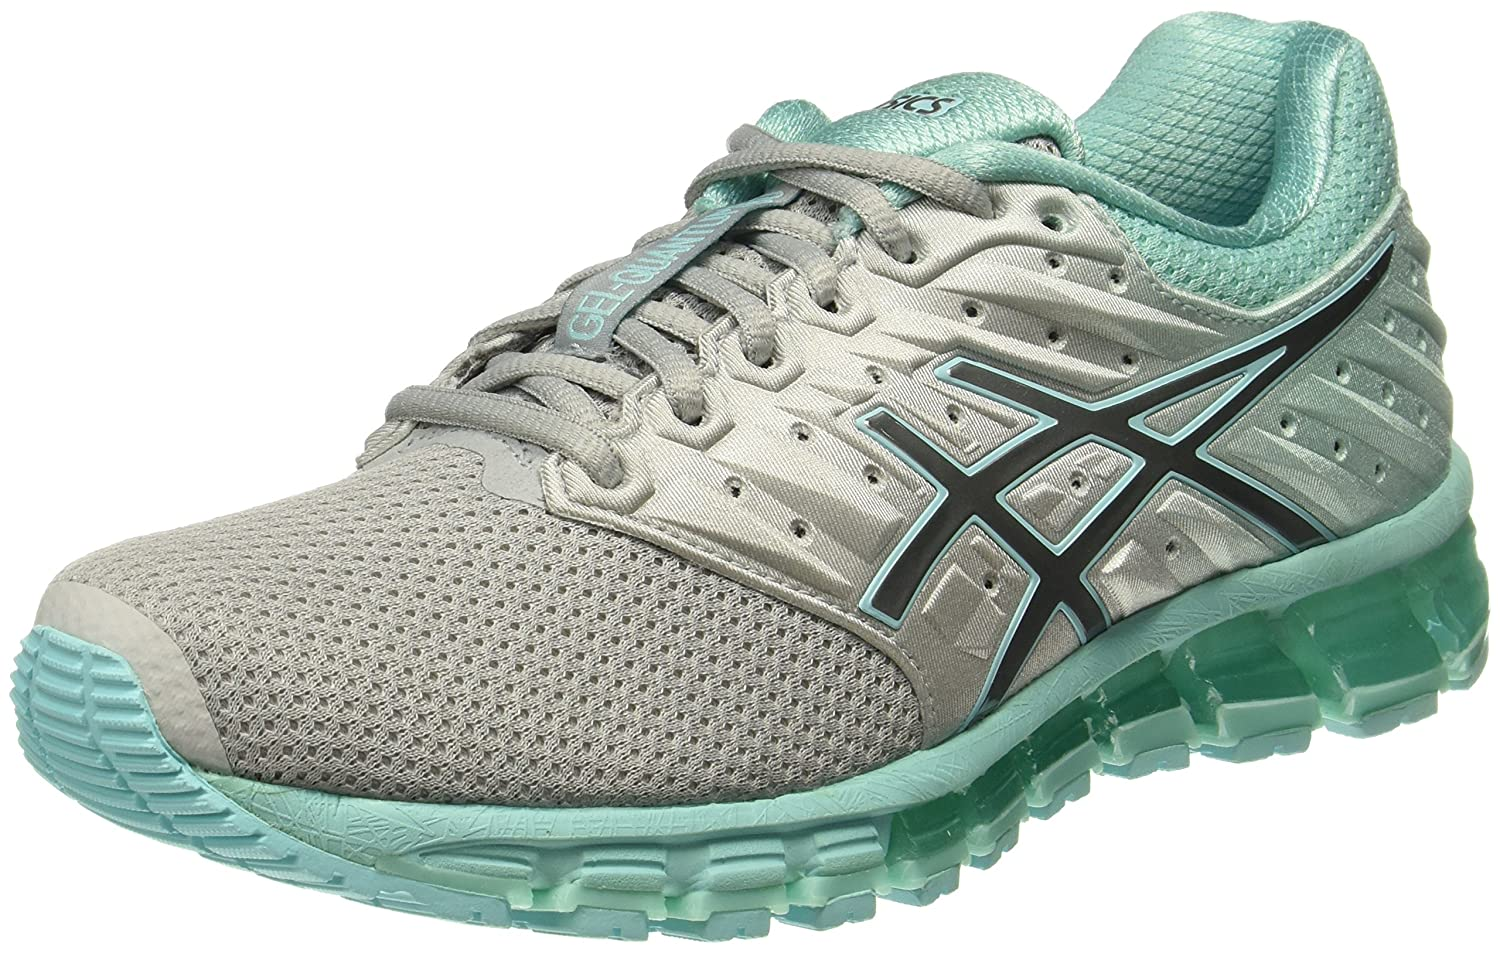 sports shoes 71506 b73e4 ASICS Chaussures femme Gel-Quantum 180 2 MX  Amazon.co.uk  Sports   Outdoors